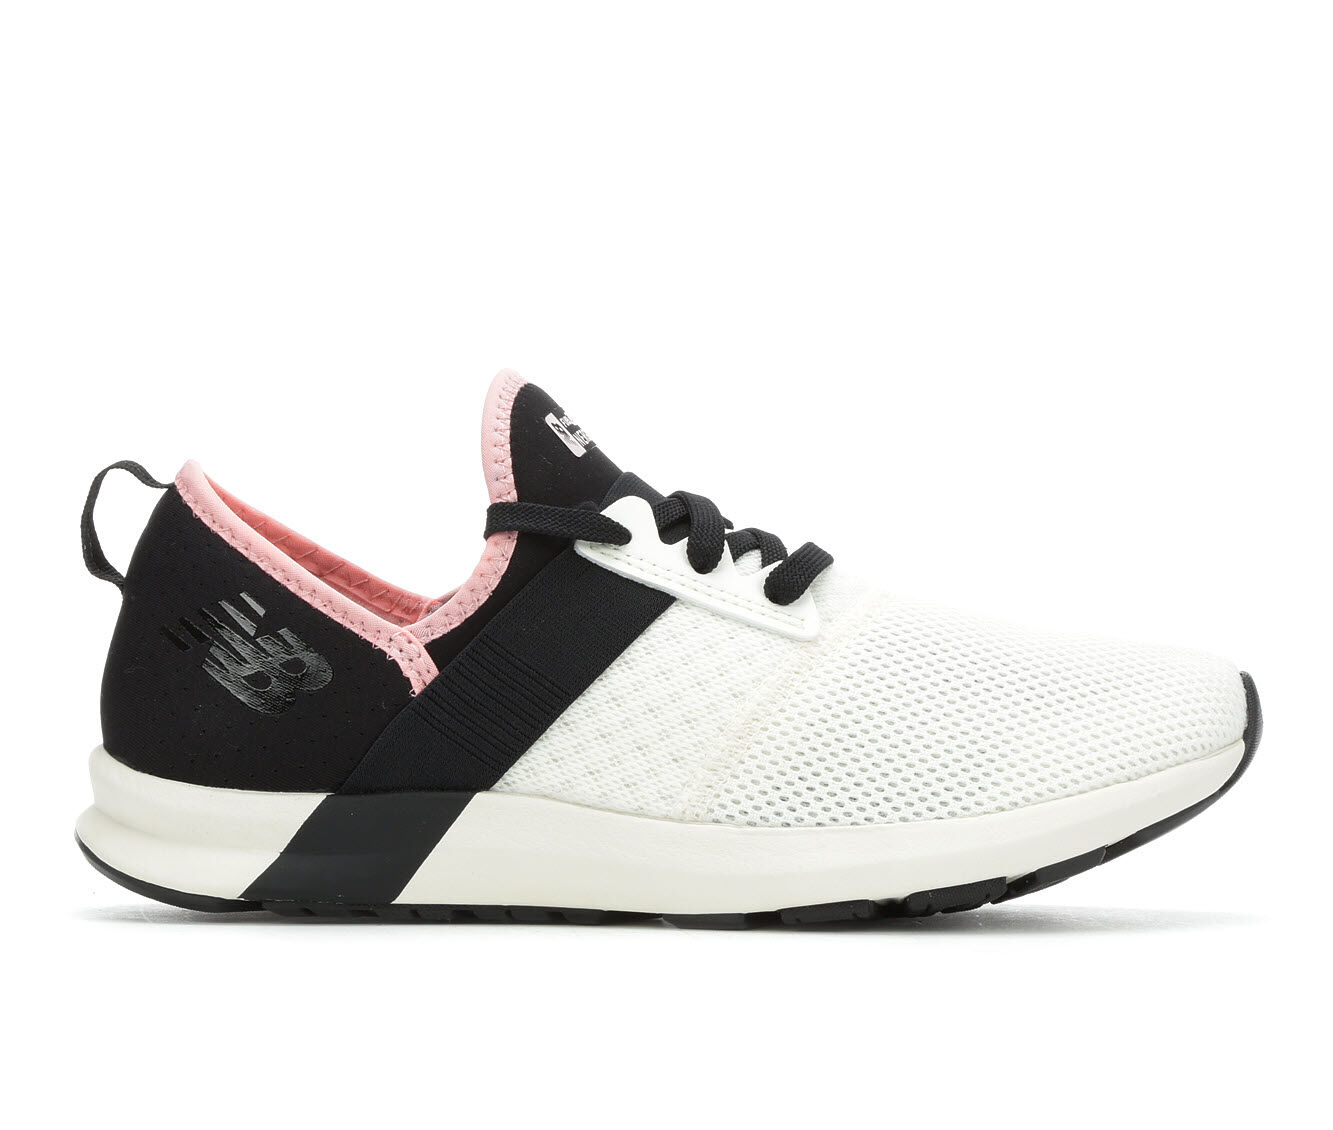 Women's New Balance FuelCore Nergize Sneakers White/Black/Pnk